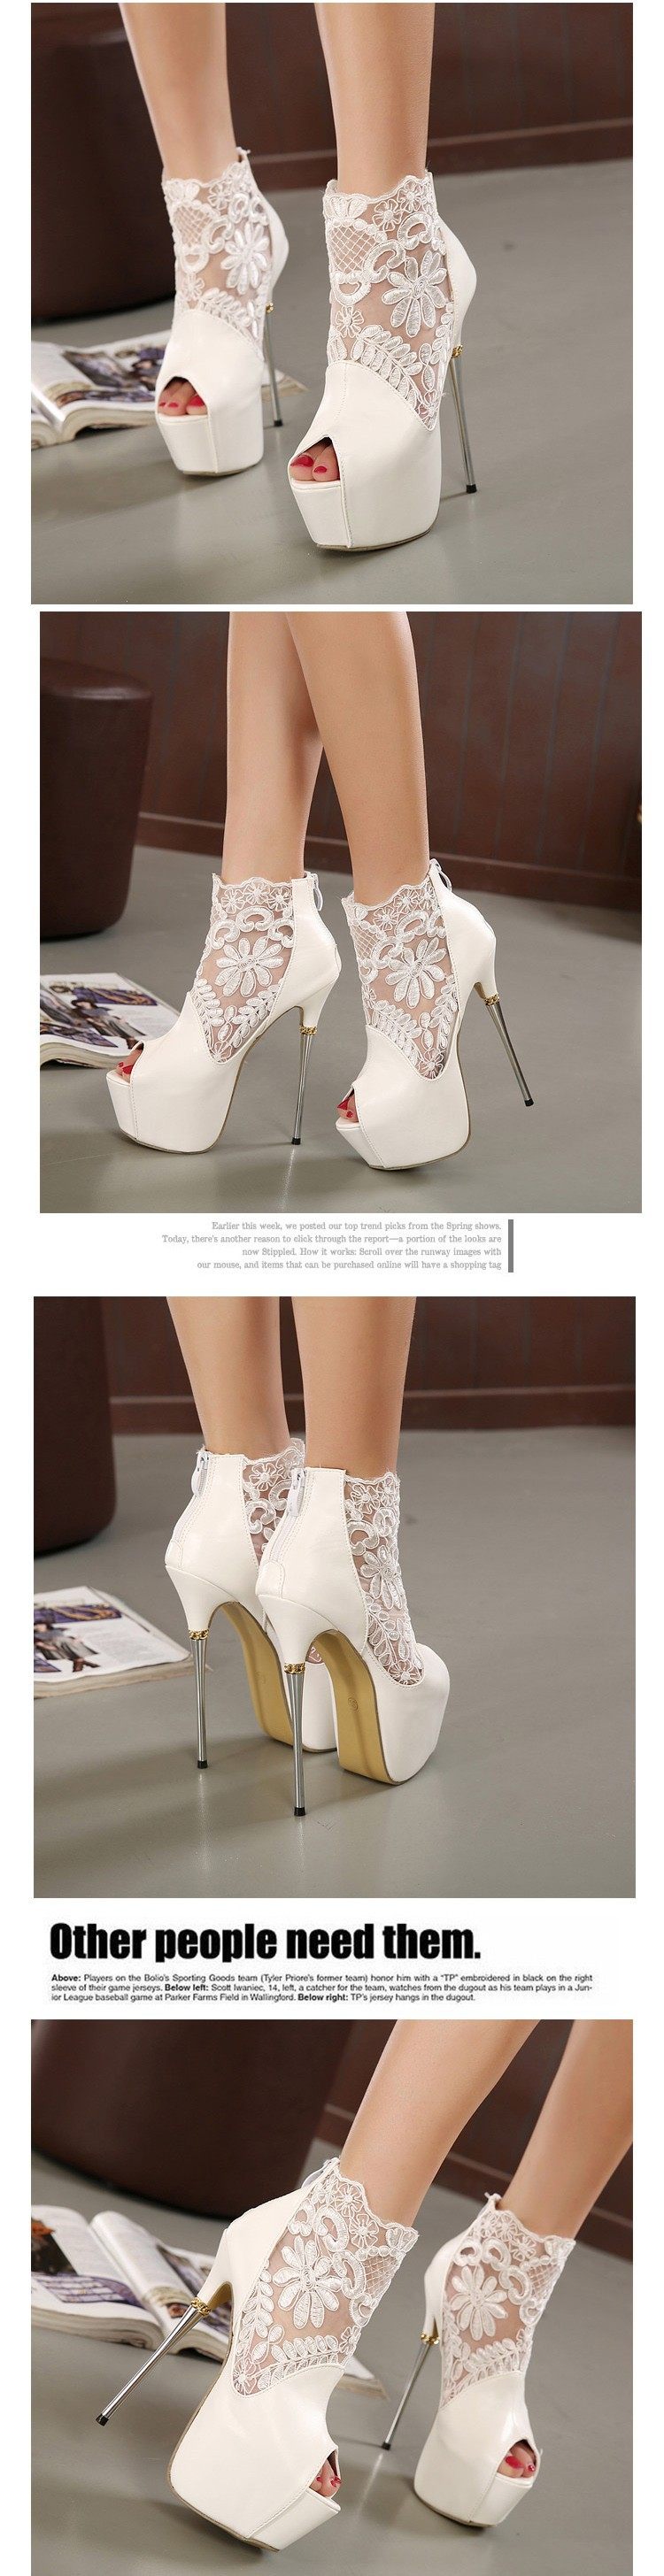 women summer boots 2016 lace pumps women party shoes platform pumps white wedding shoes stiletto heels open toe dress shoes C992 3